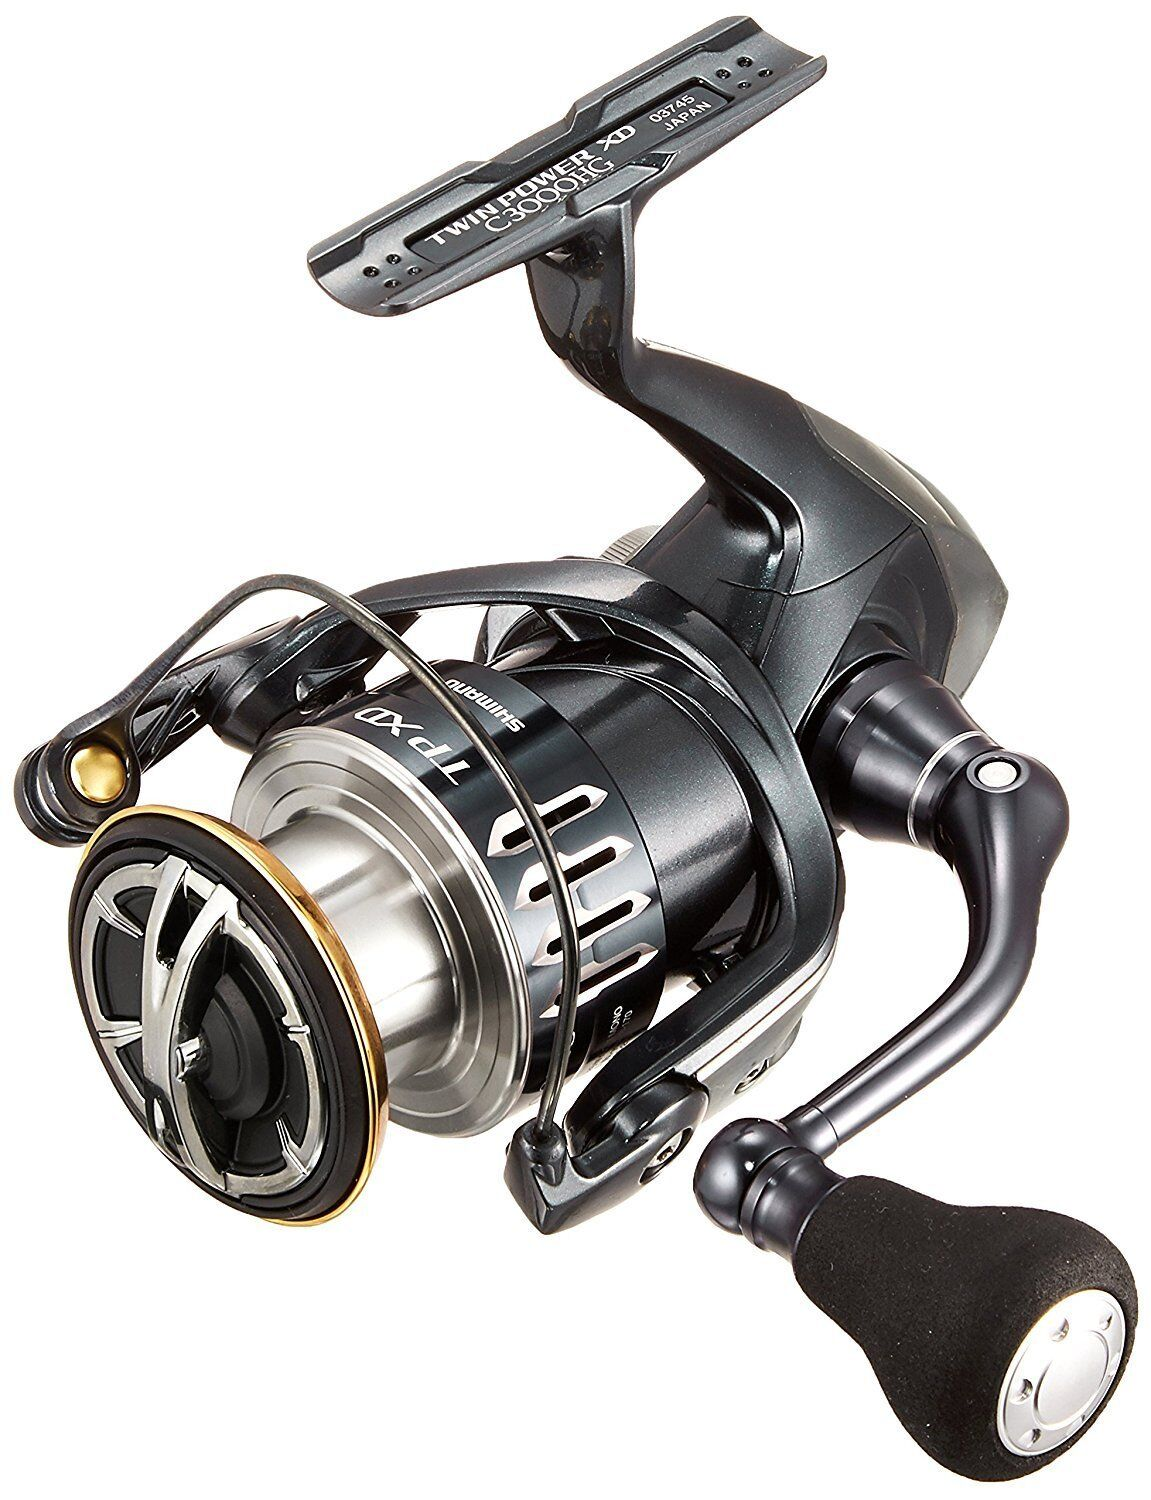 SHIMANO 17 TWIN POWER XD C3000HG Spinning Reel New in Box